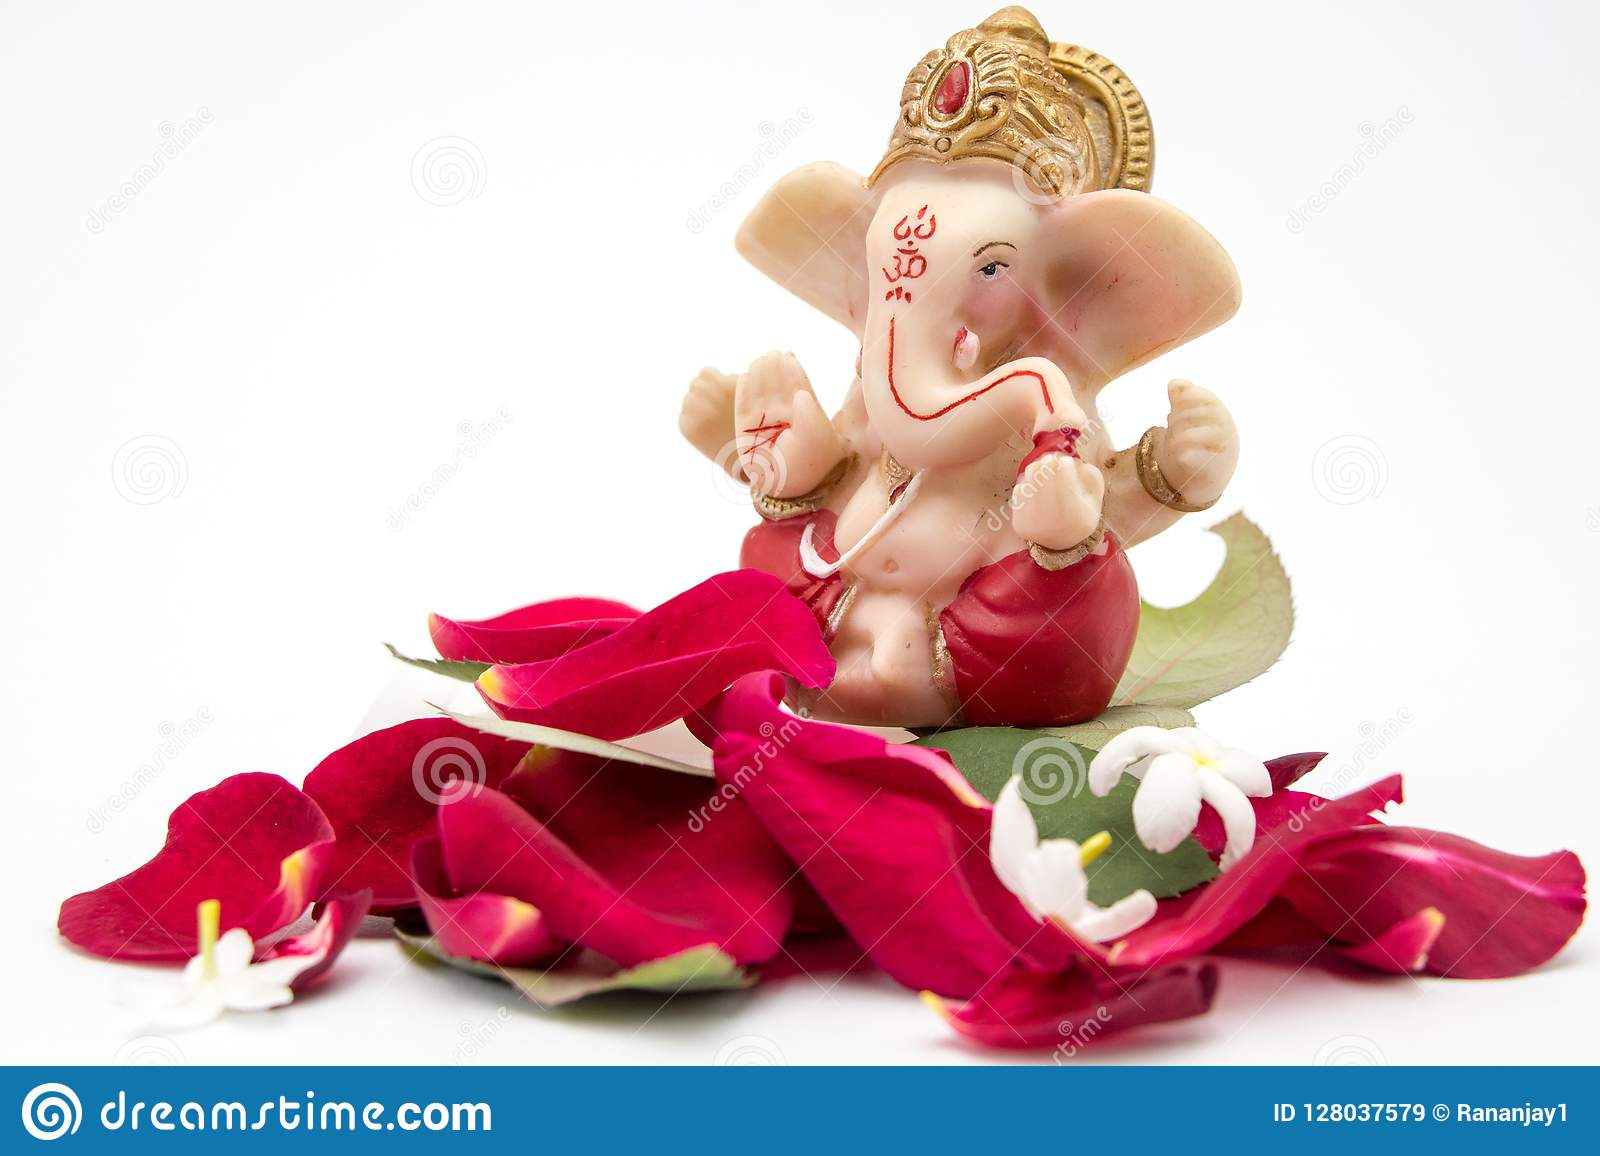 Lord Ganesha Idol With Rose Petals White Flowers And Leaves On